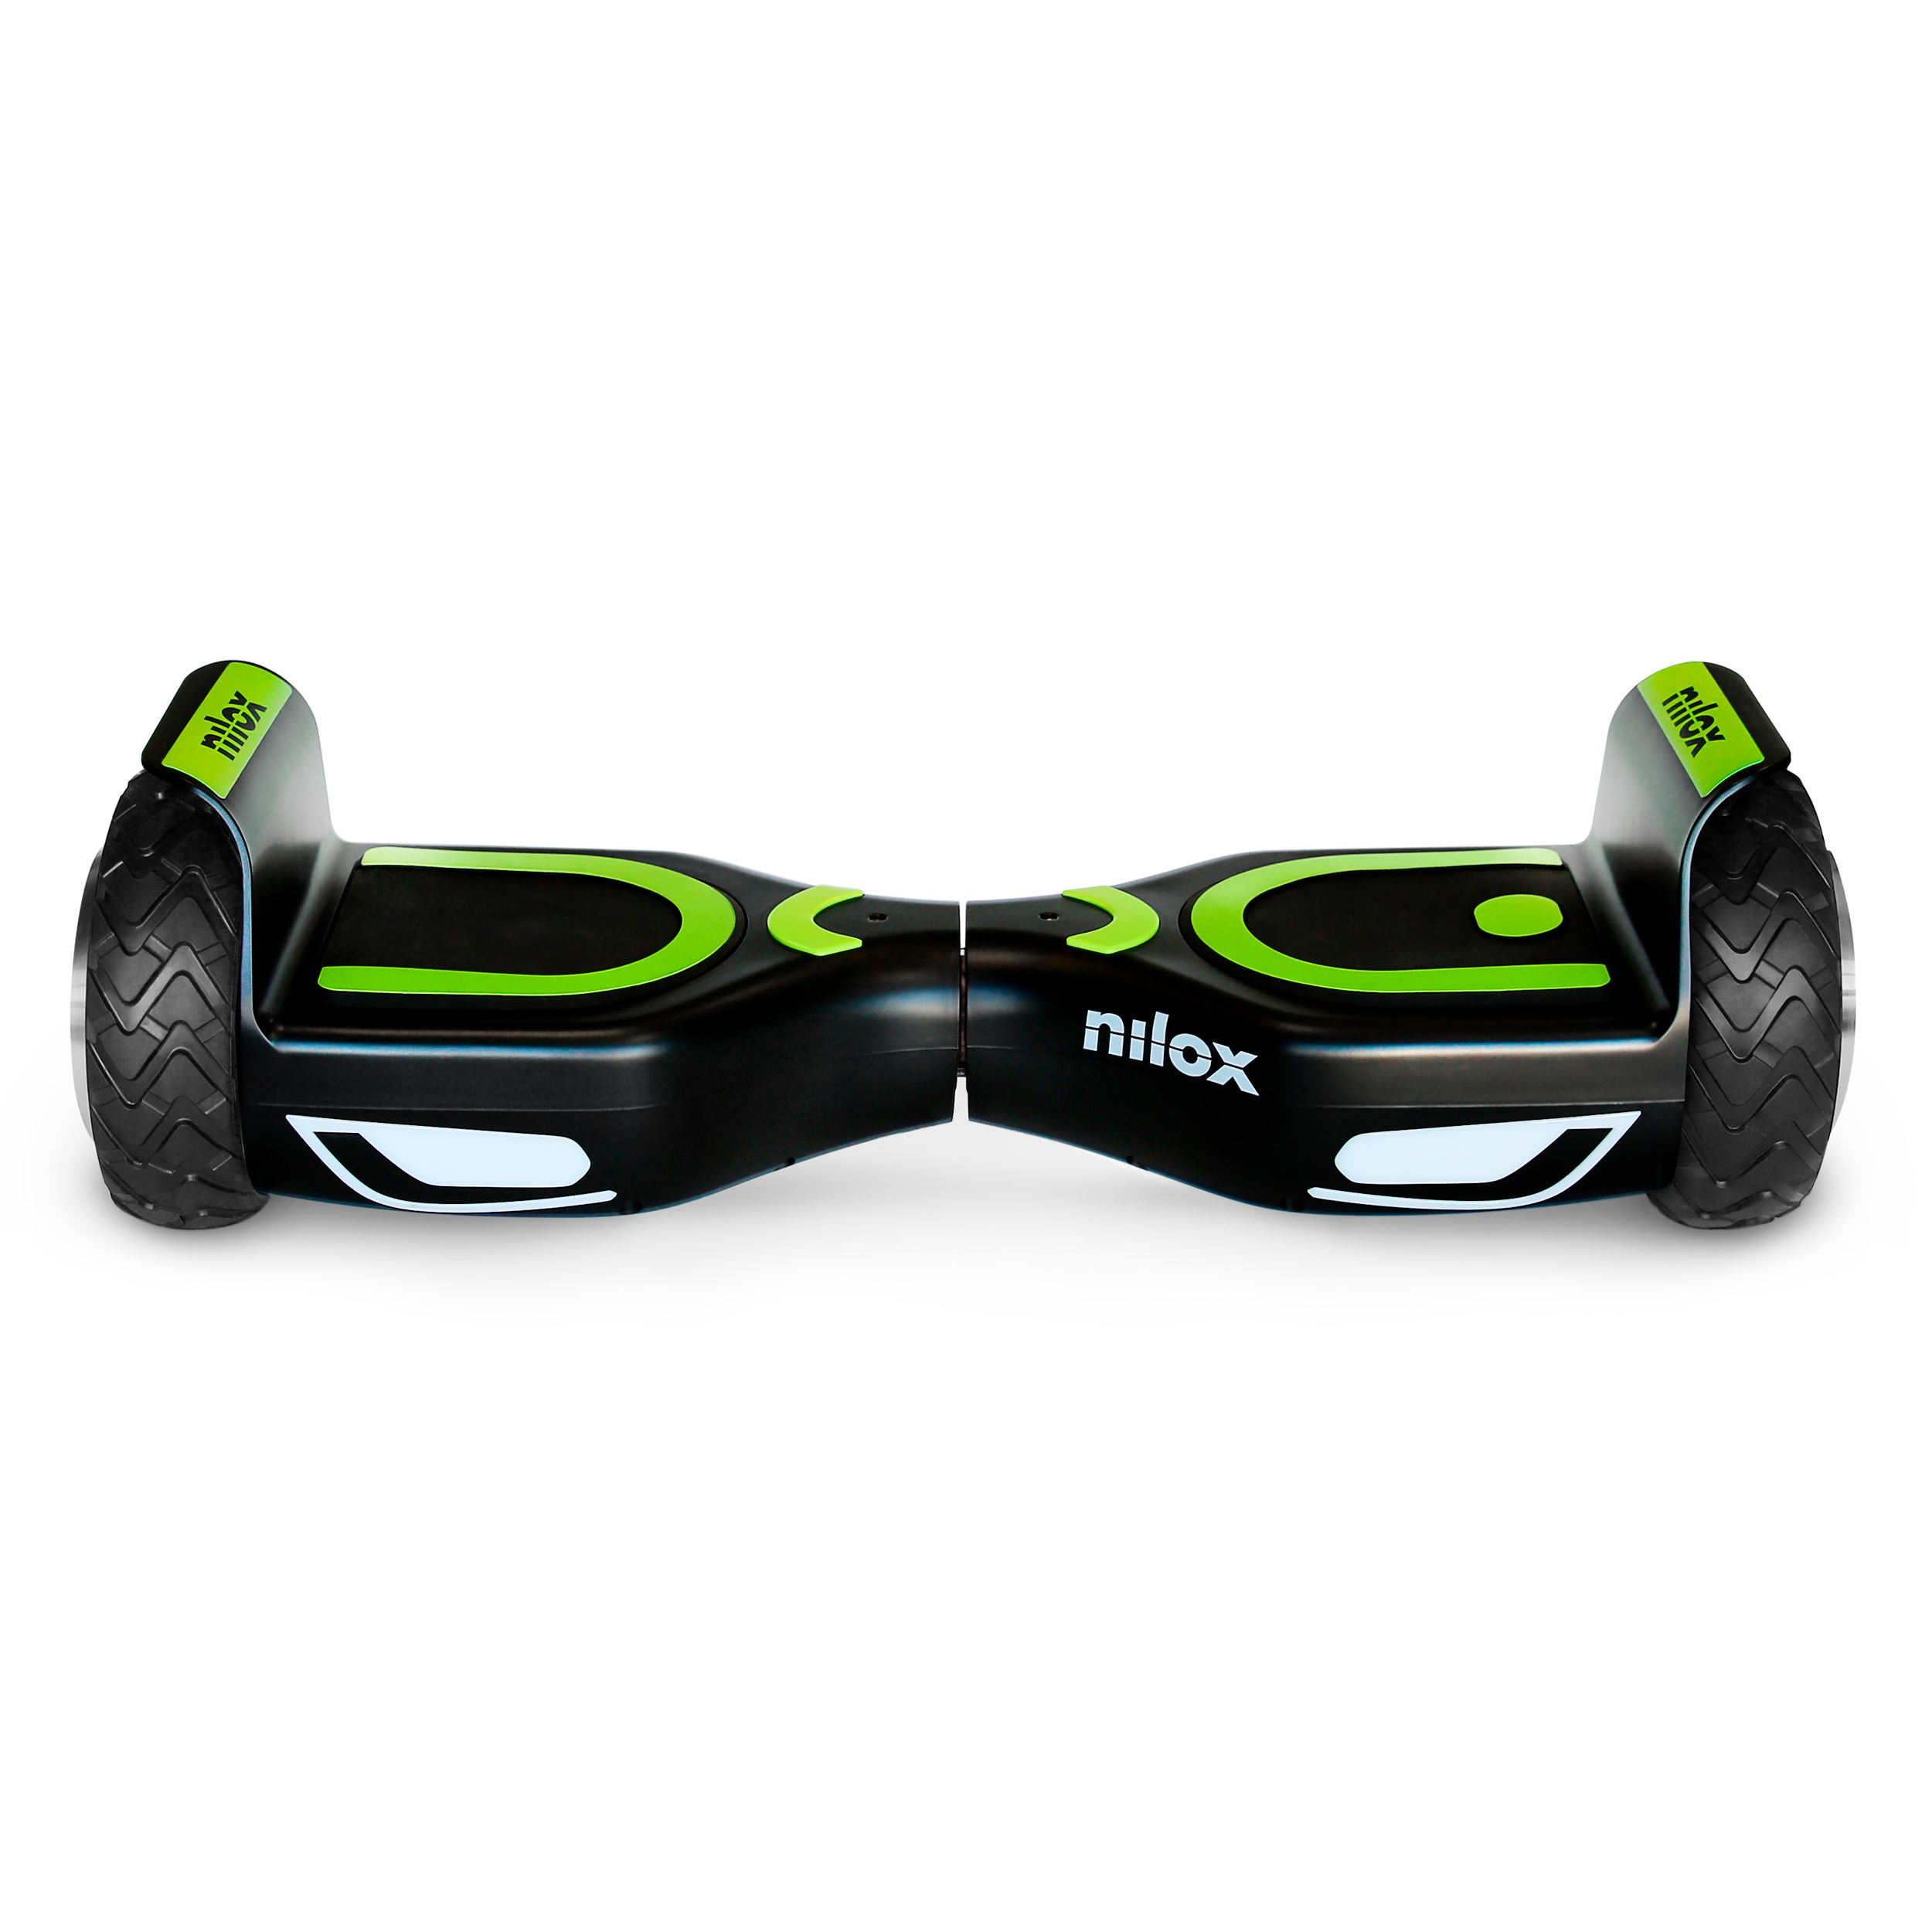 doc-2-hoverboard-black-30nxbk65nwn01-505117-hd.jpg